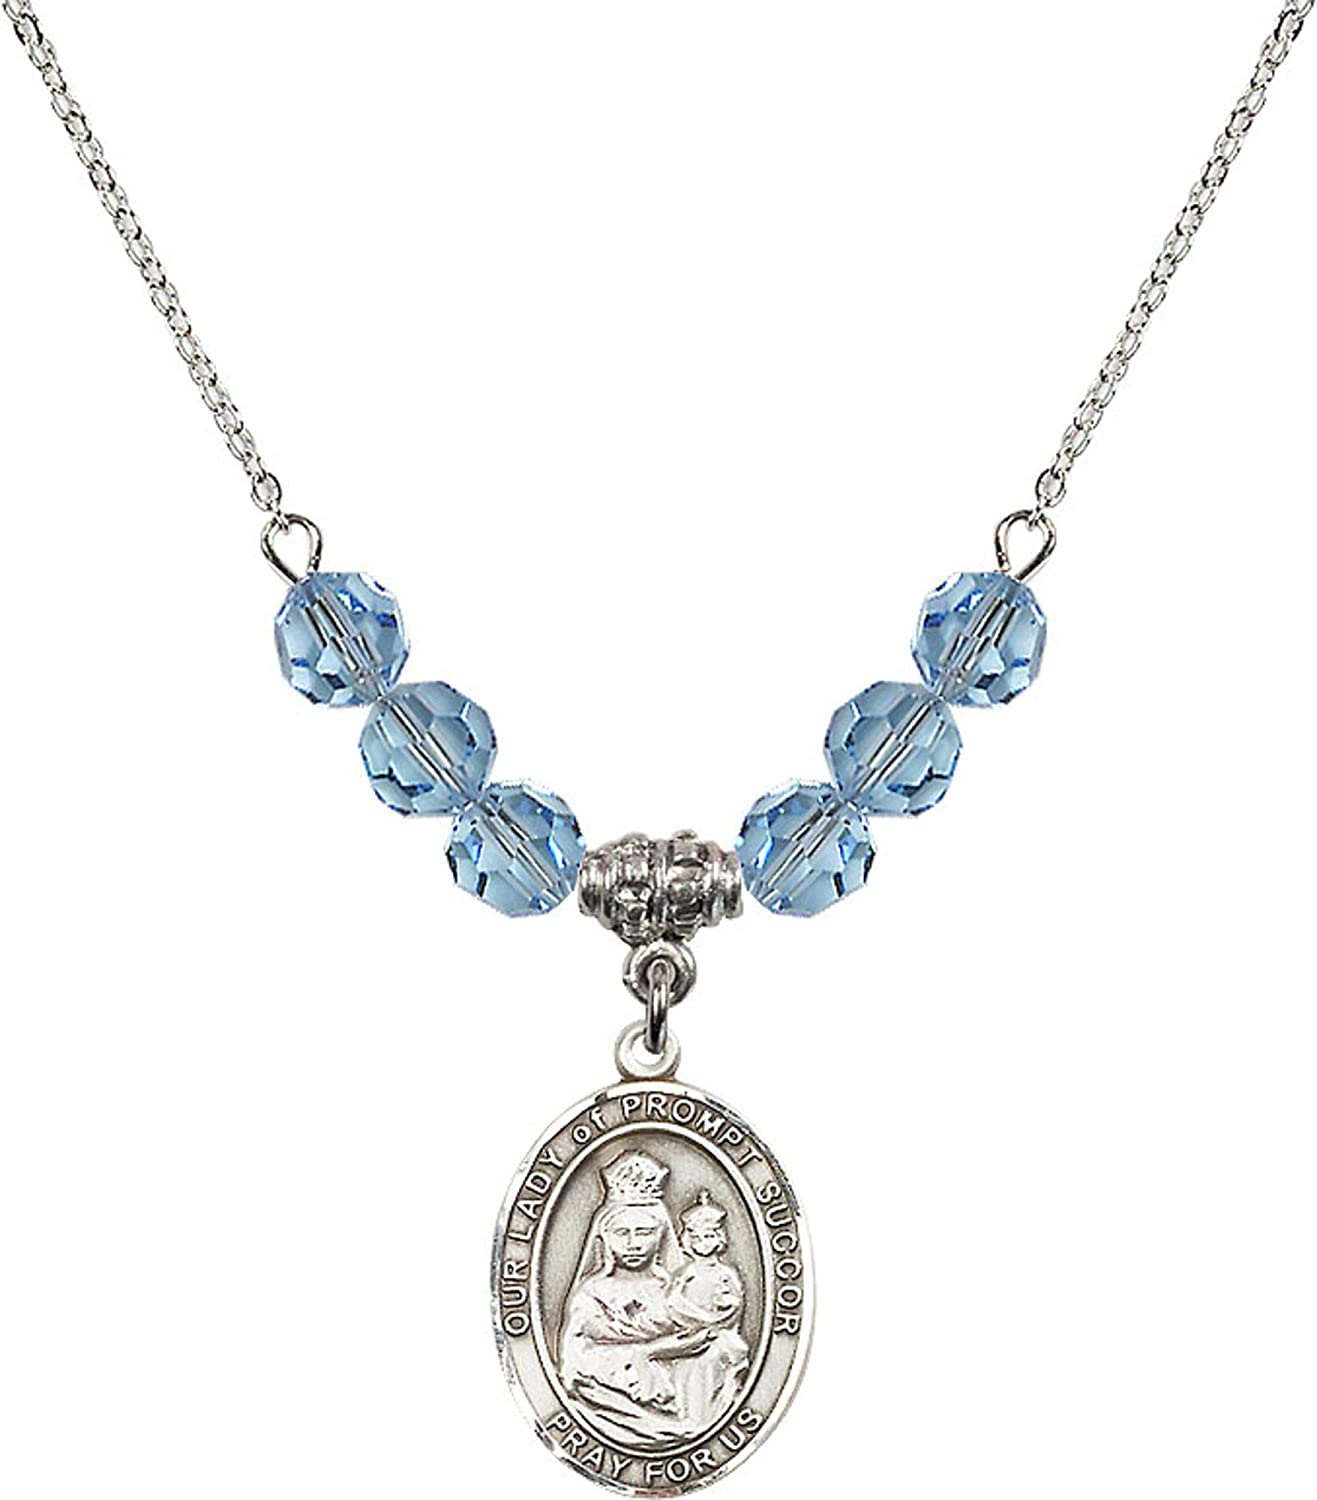 Bonyak Jewelry 18 Inch Rhodium Plated Necklace w// 6mm Blue March Birth Month Stone Beads and Our Lady of Prompt Succor Charm